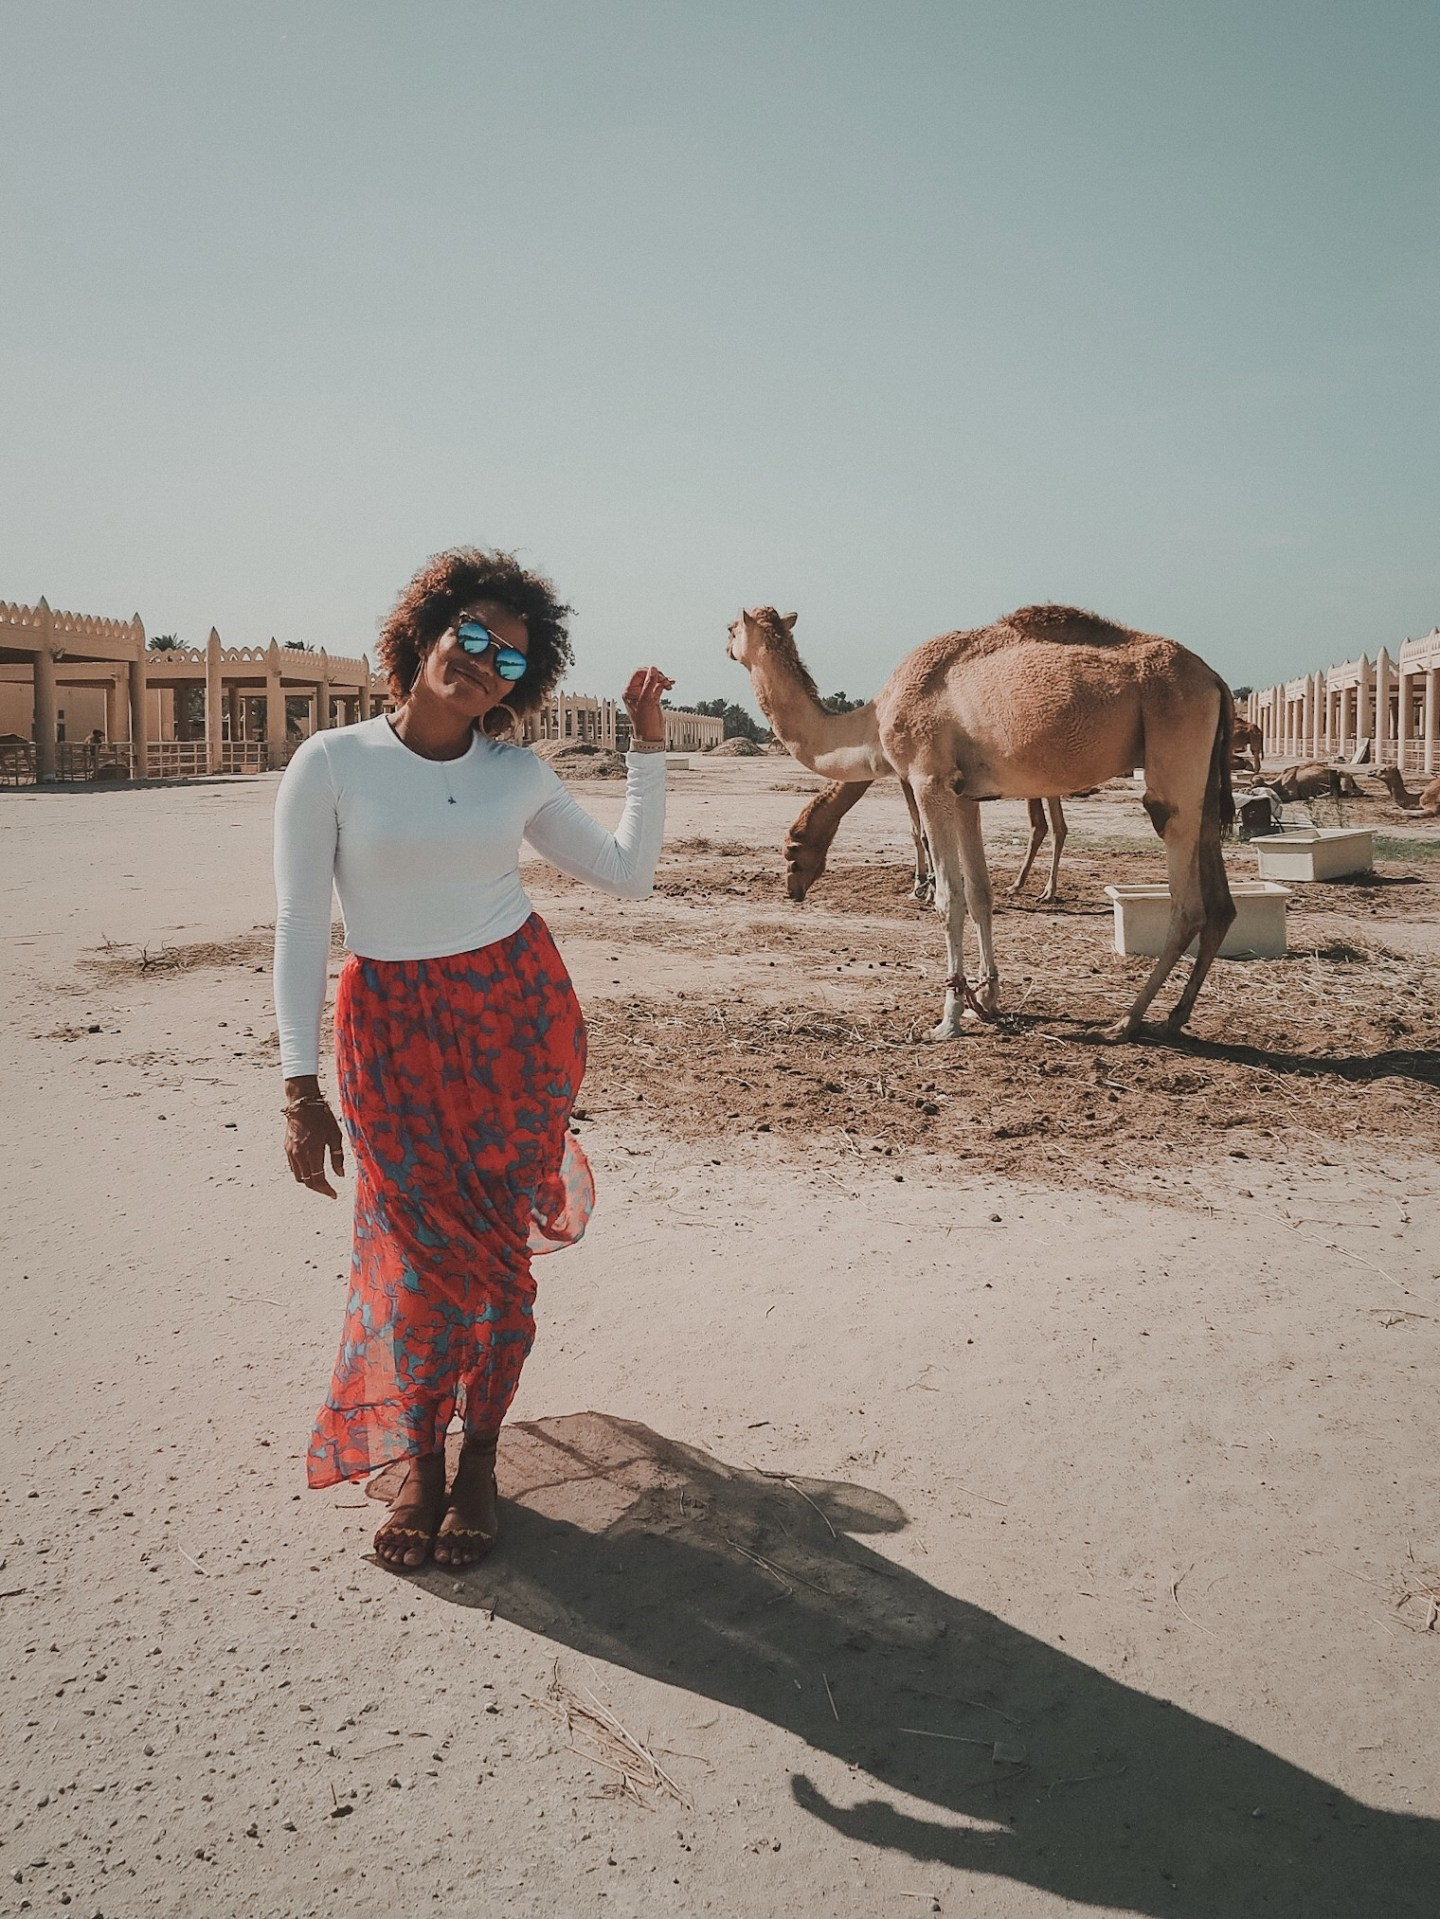 Illustrated by Sade - Woman taking photo at the Royal Camel Farm in Manama, Bahrain